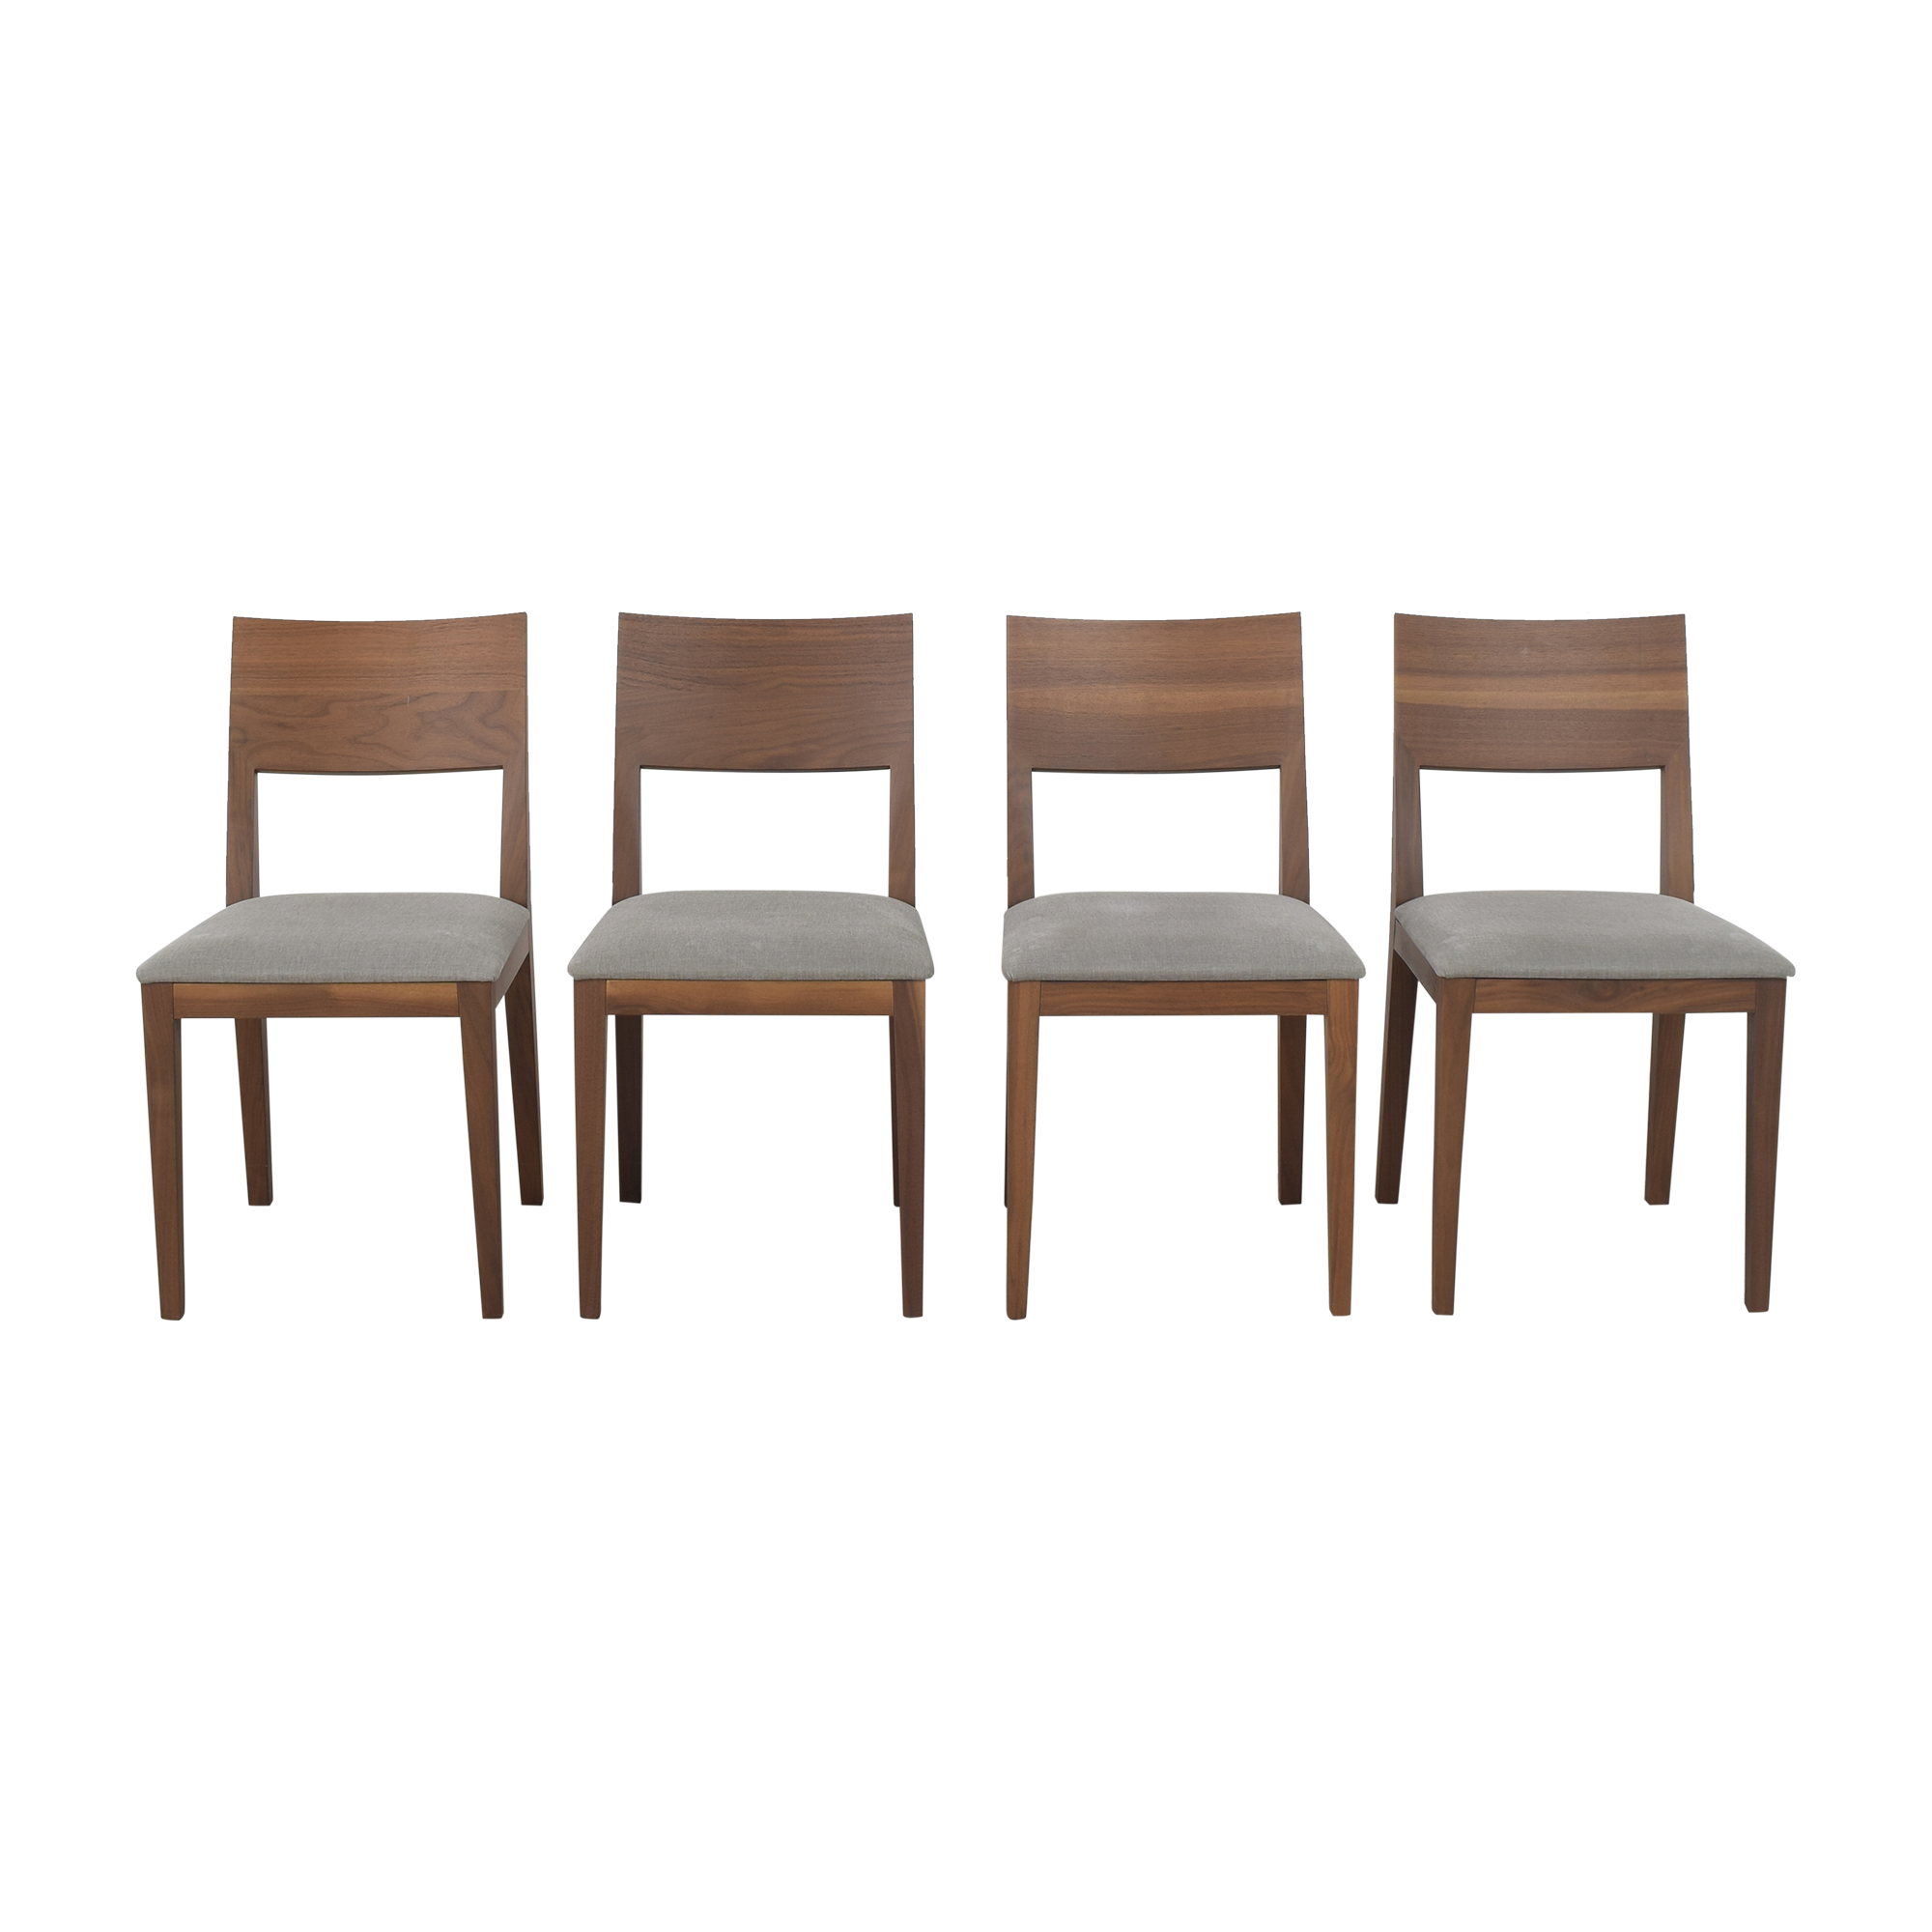 Crate & Barrel Crate & Barrel Thalia Dining Chairs Chairs